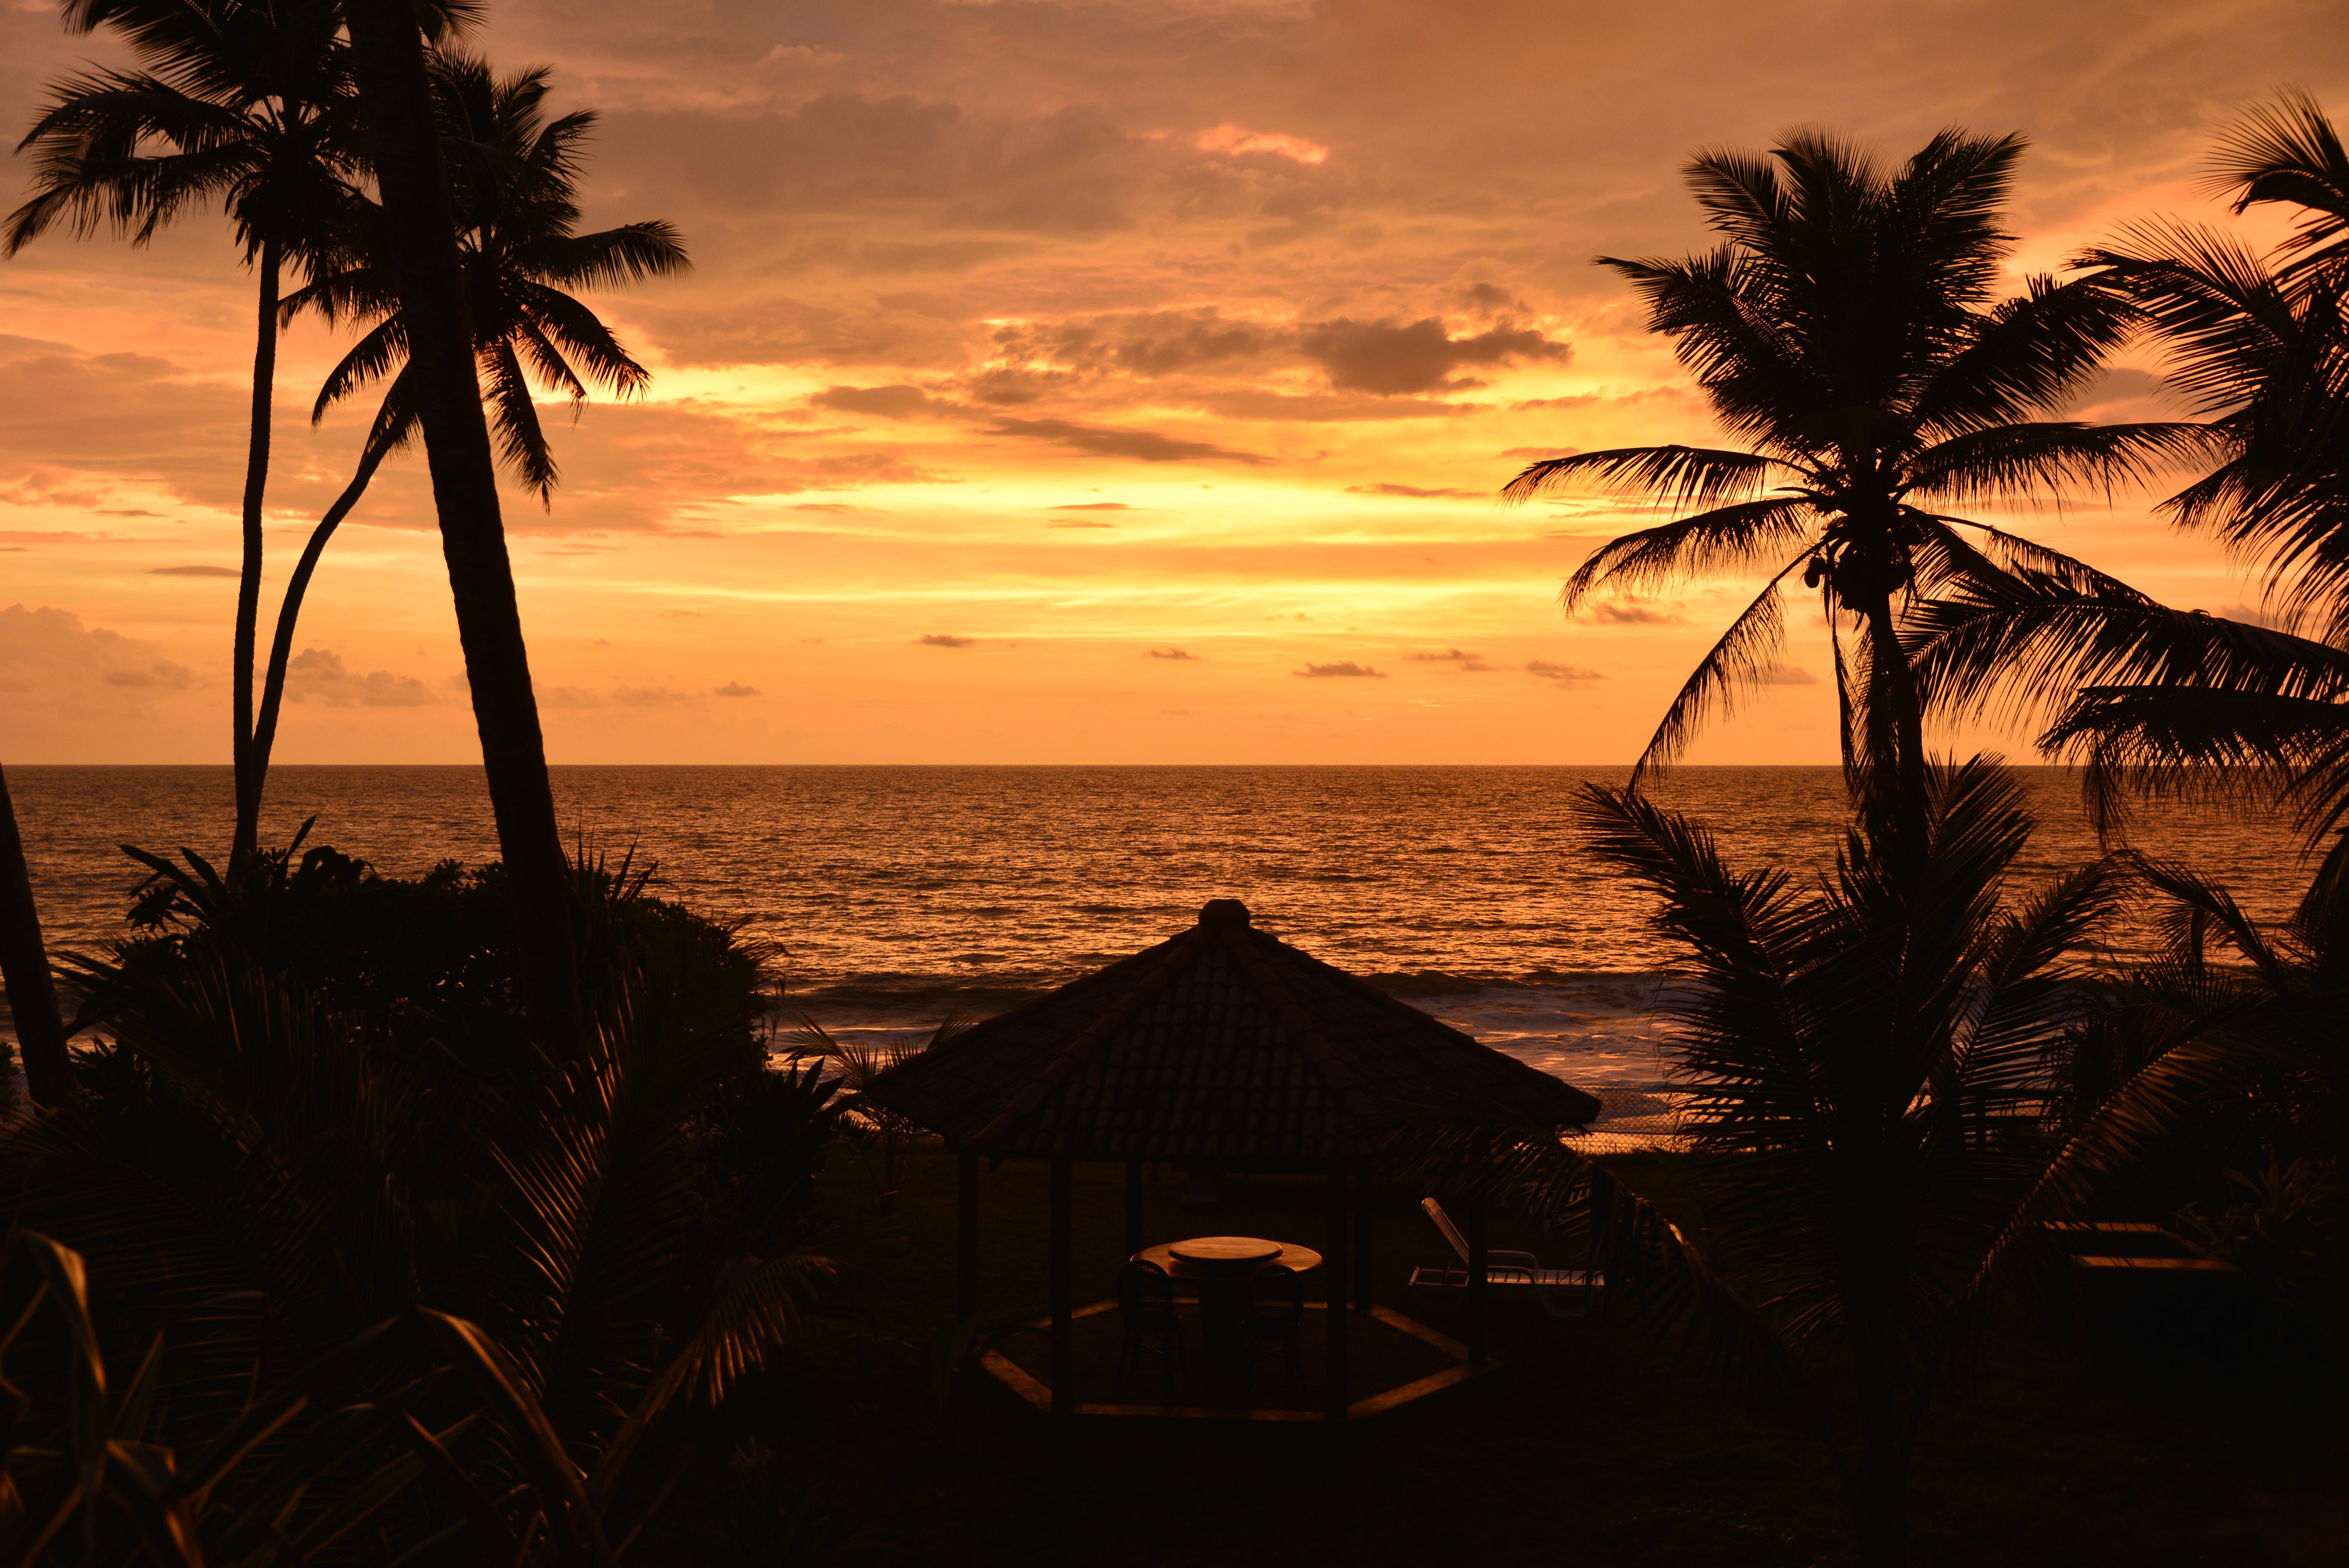 Beach sunset in Sri Lanka during a relaxing vacation or honeymoon